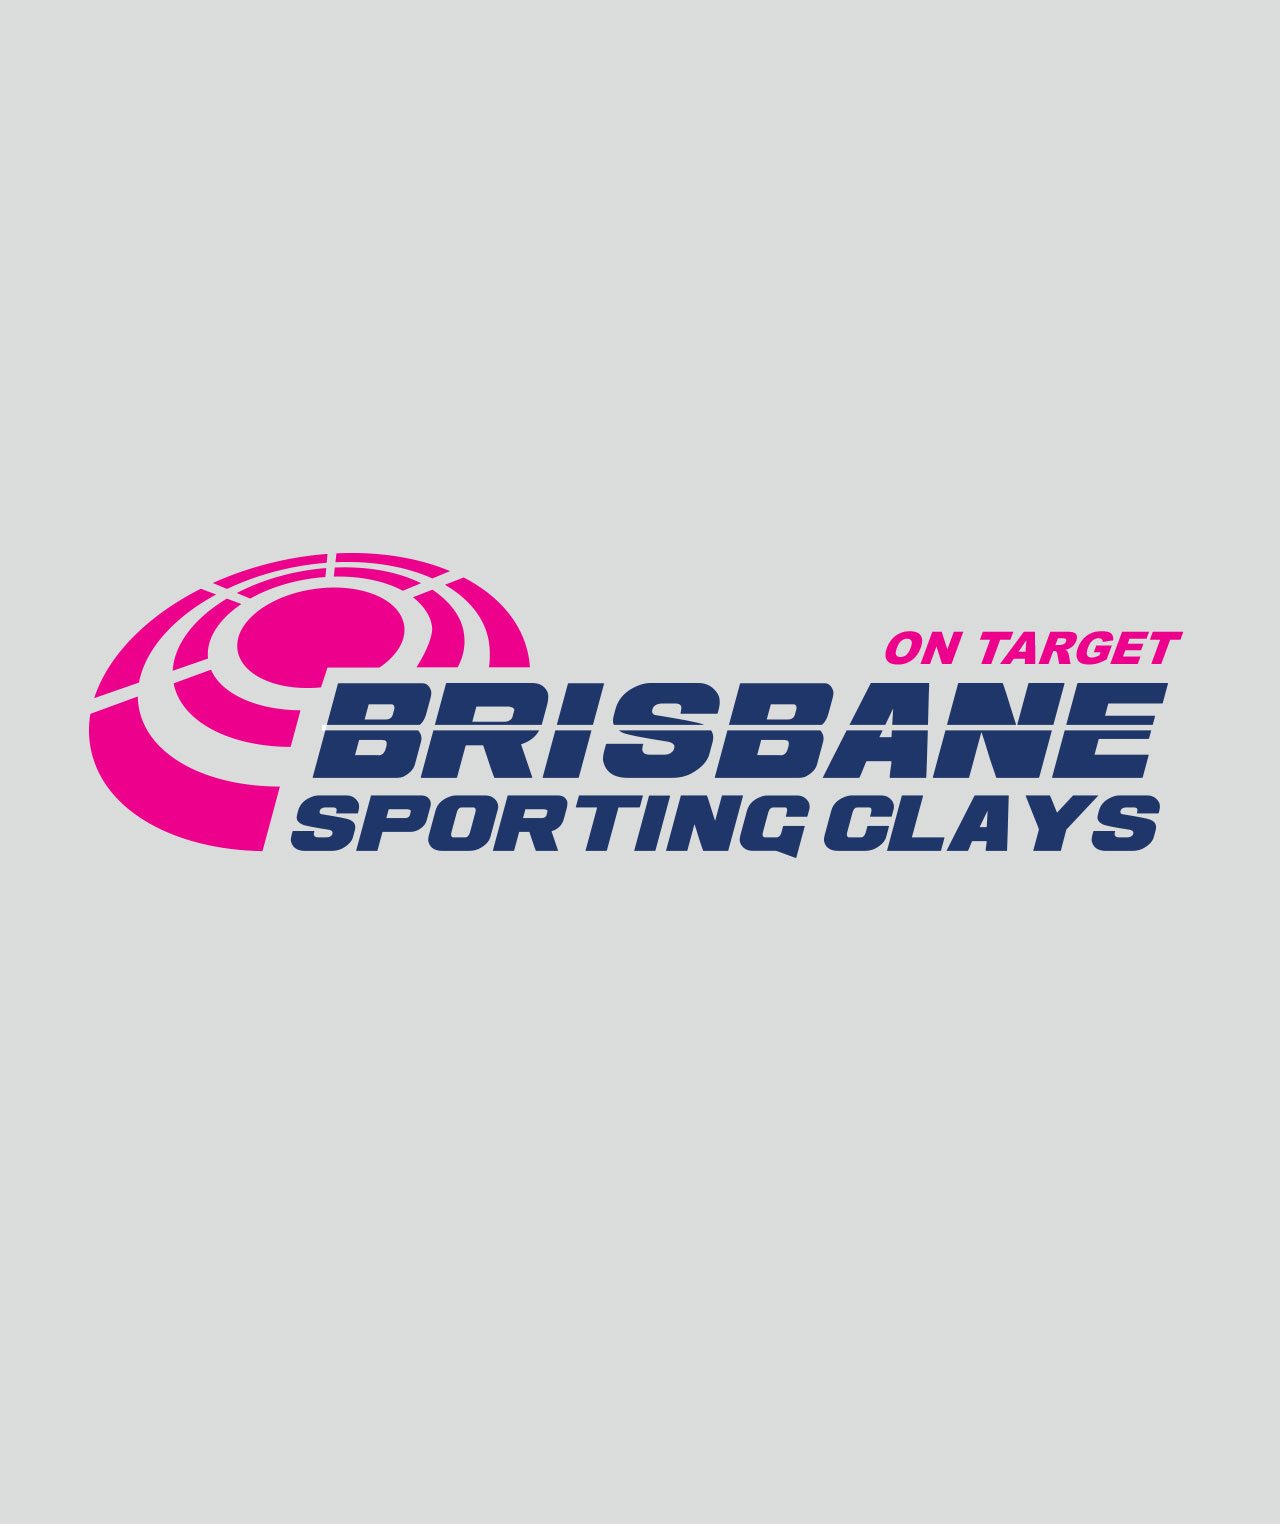 brisbane sporting clays